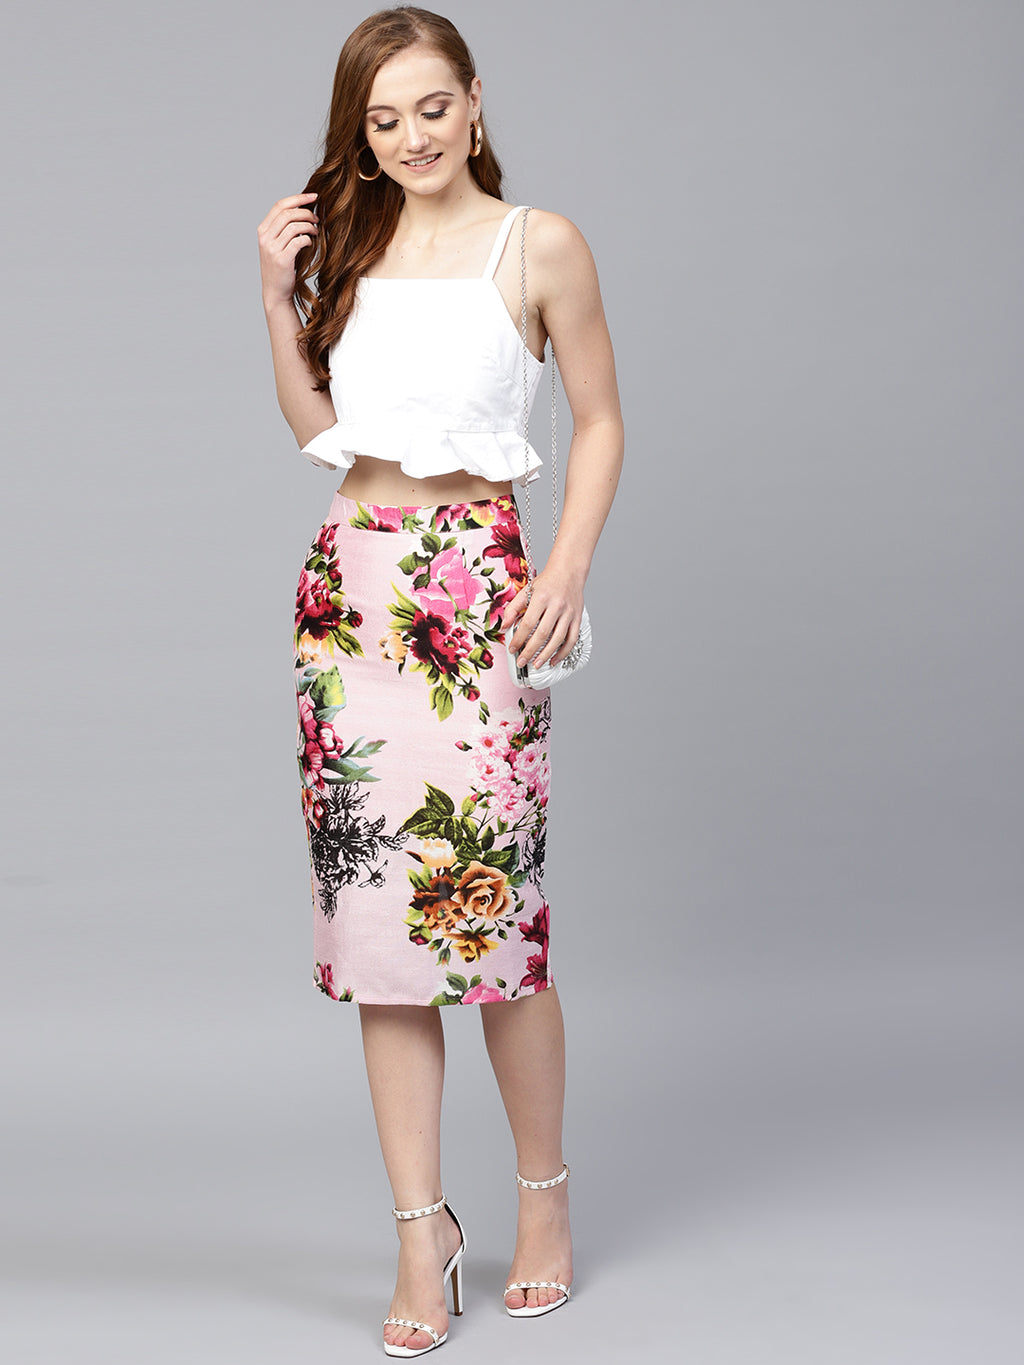 PINK & GREEN PRINTED PENCIL SKIRT - chique boutique